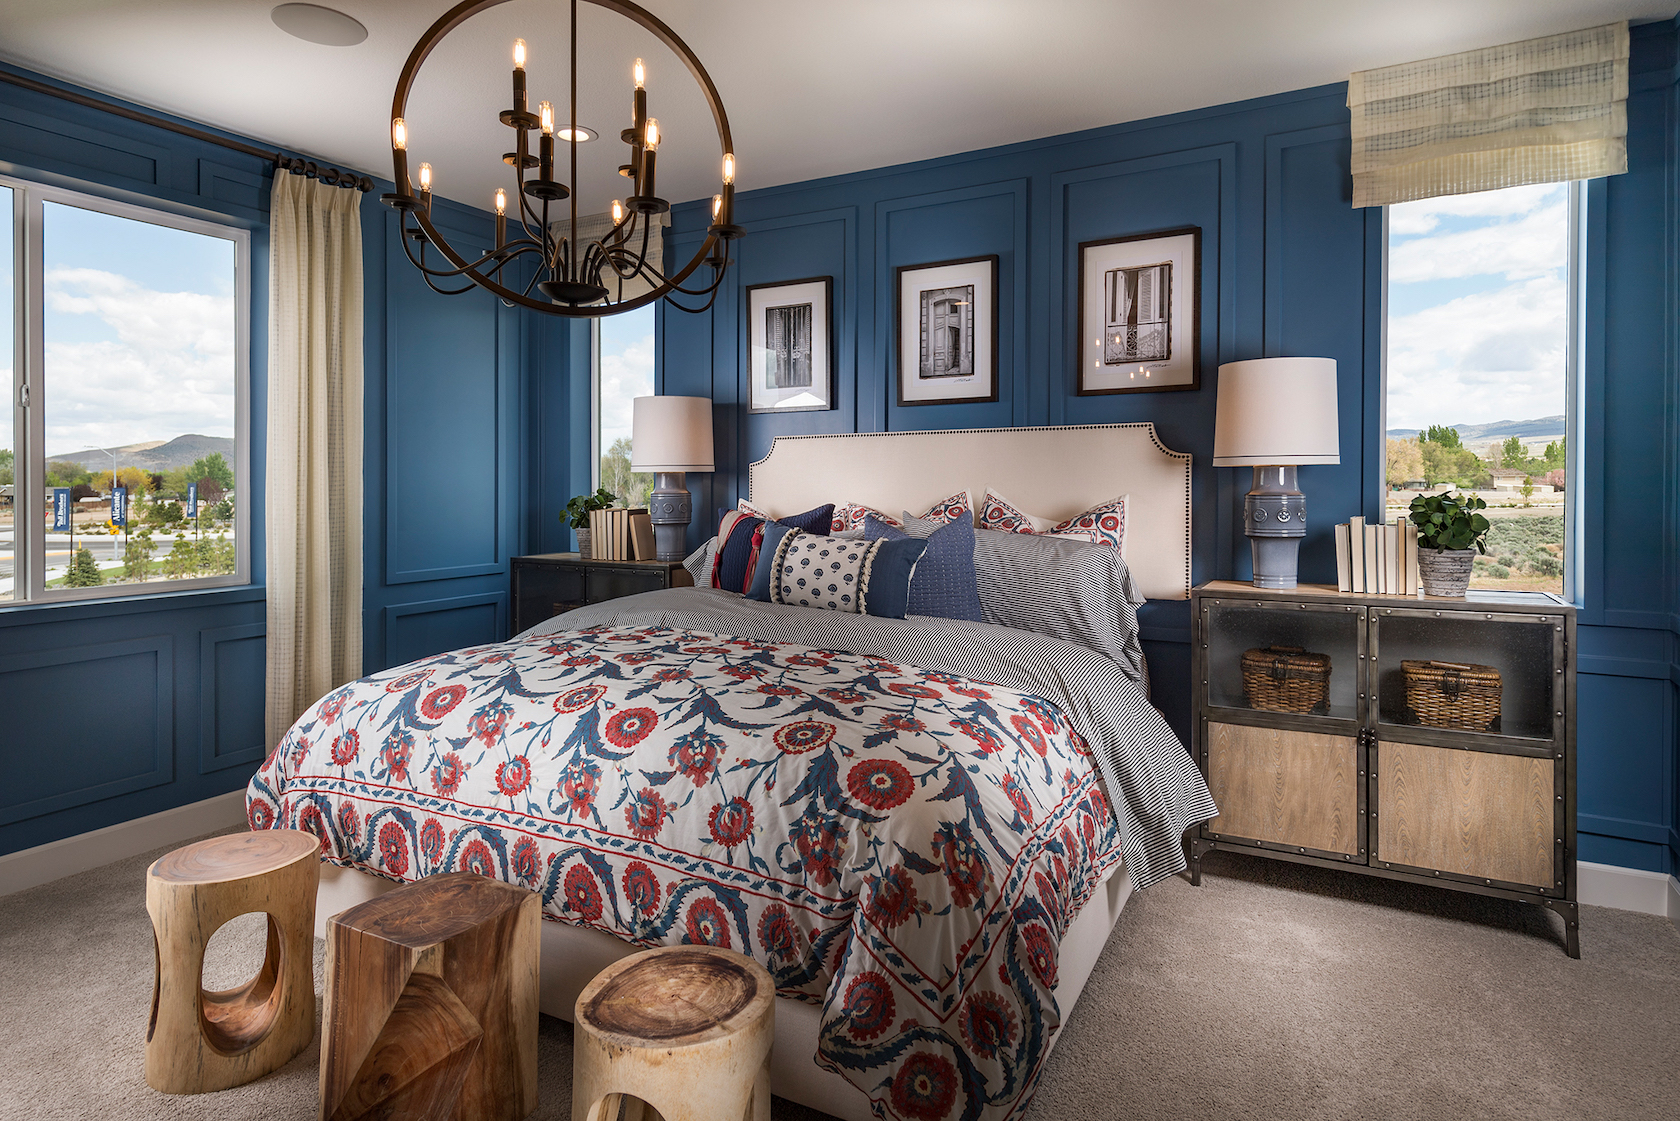 Bedroom with blue painted walls and modern chandelier.